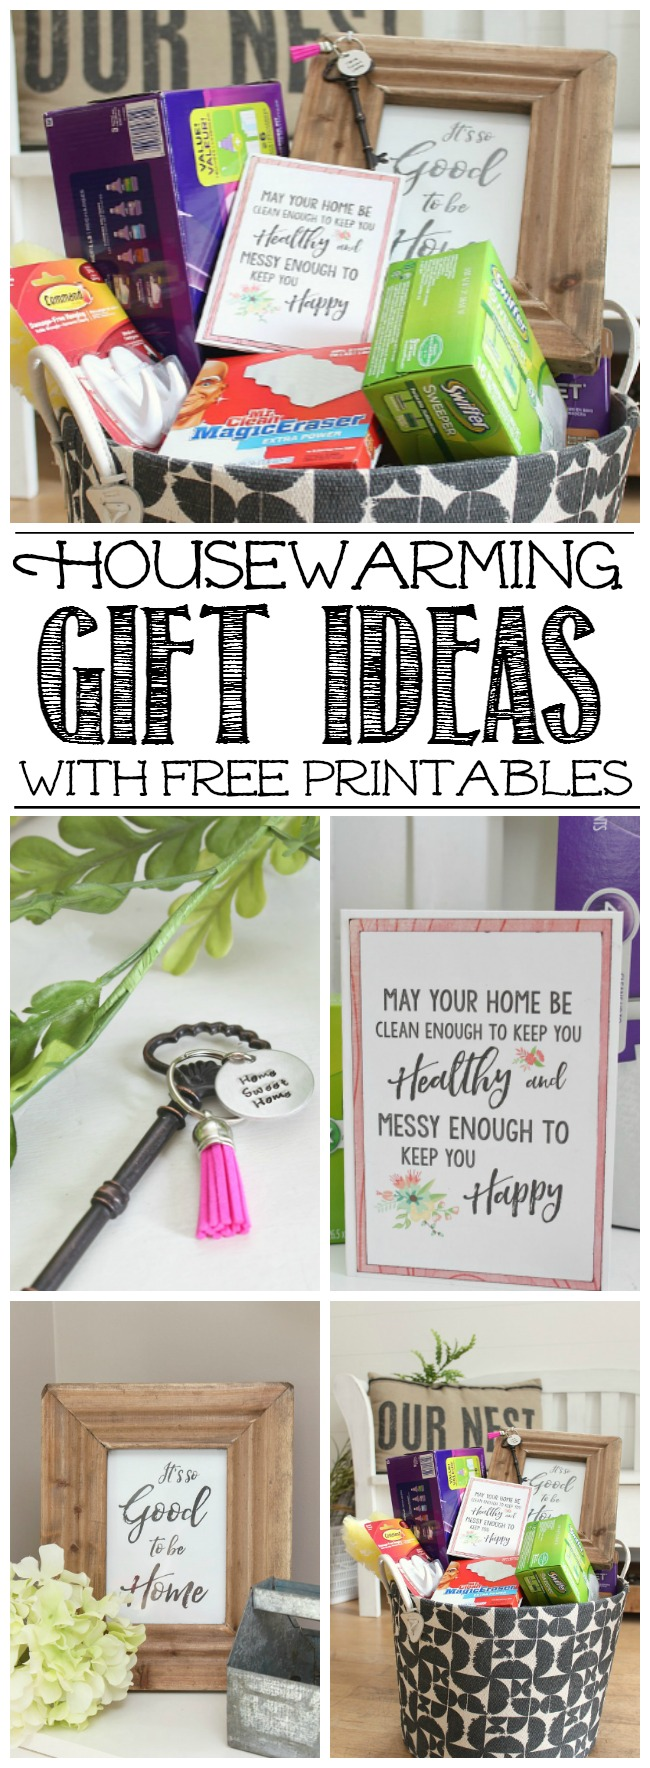 Housewarming gift ideas and free home printables clean Housewarming gift ideas